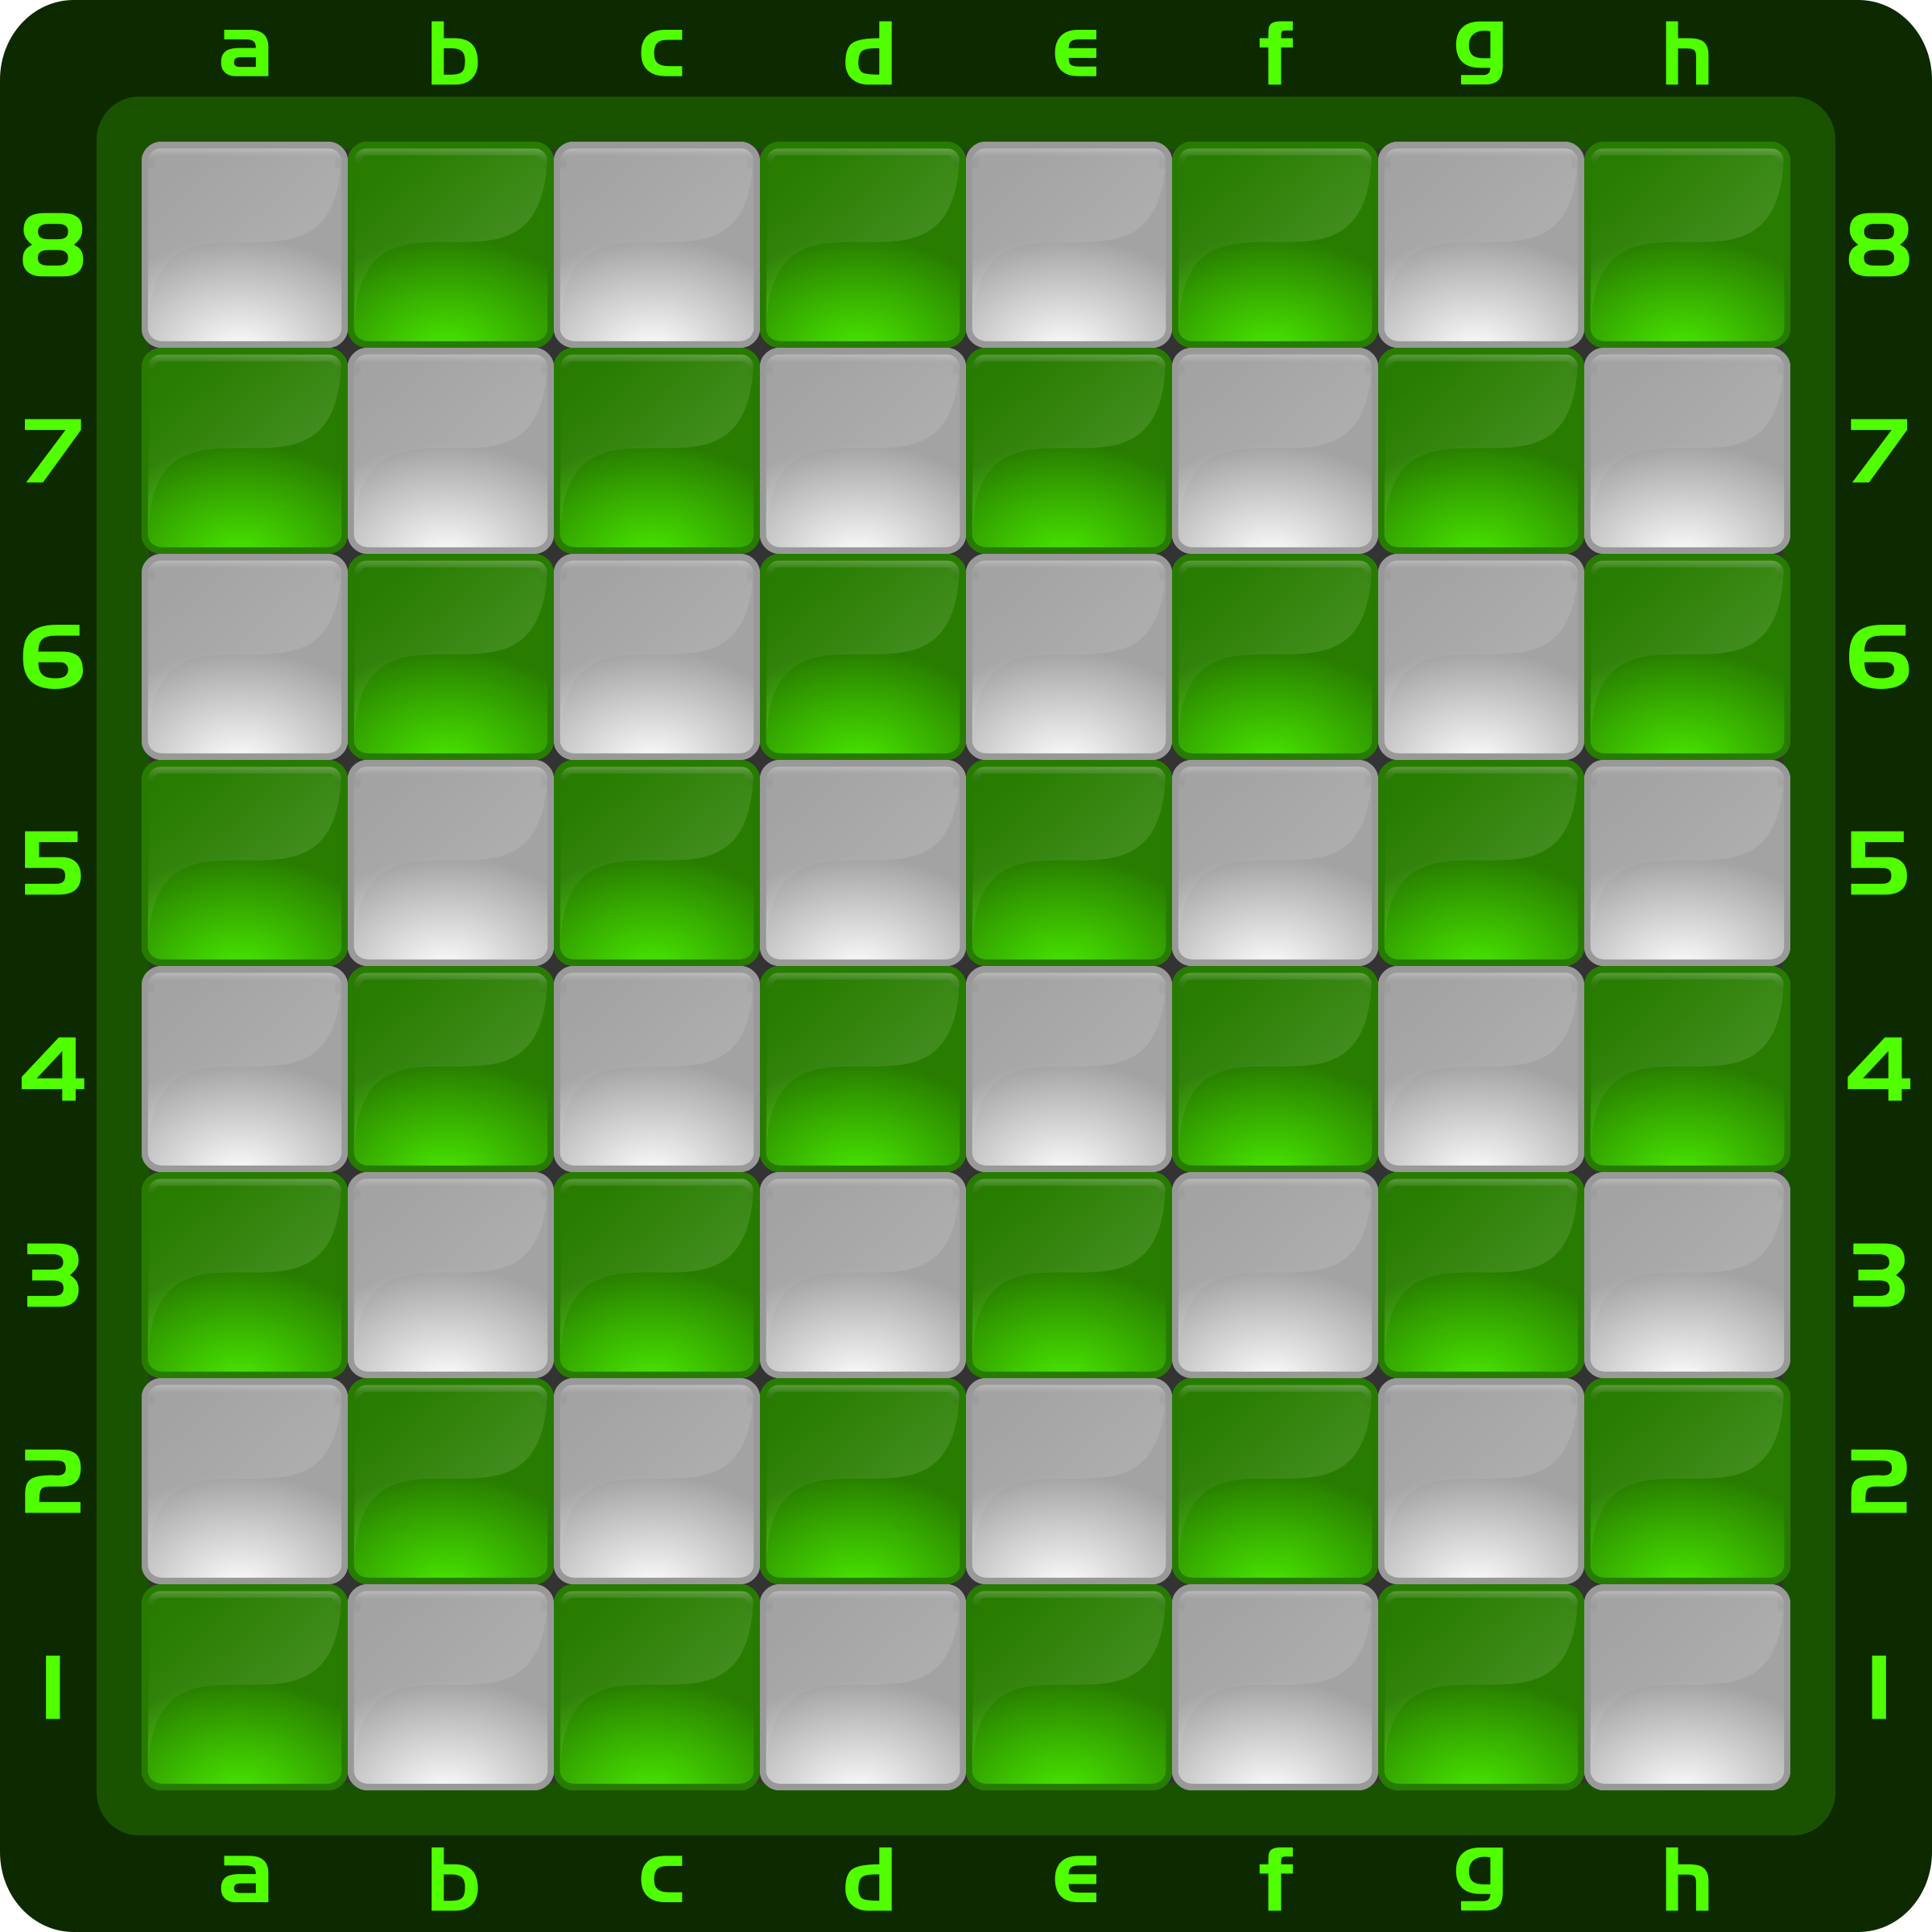 Chessboard Glossy Squares - Green by DG-RA